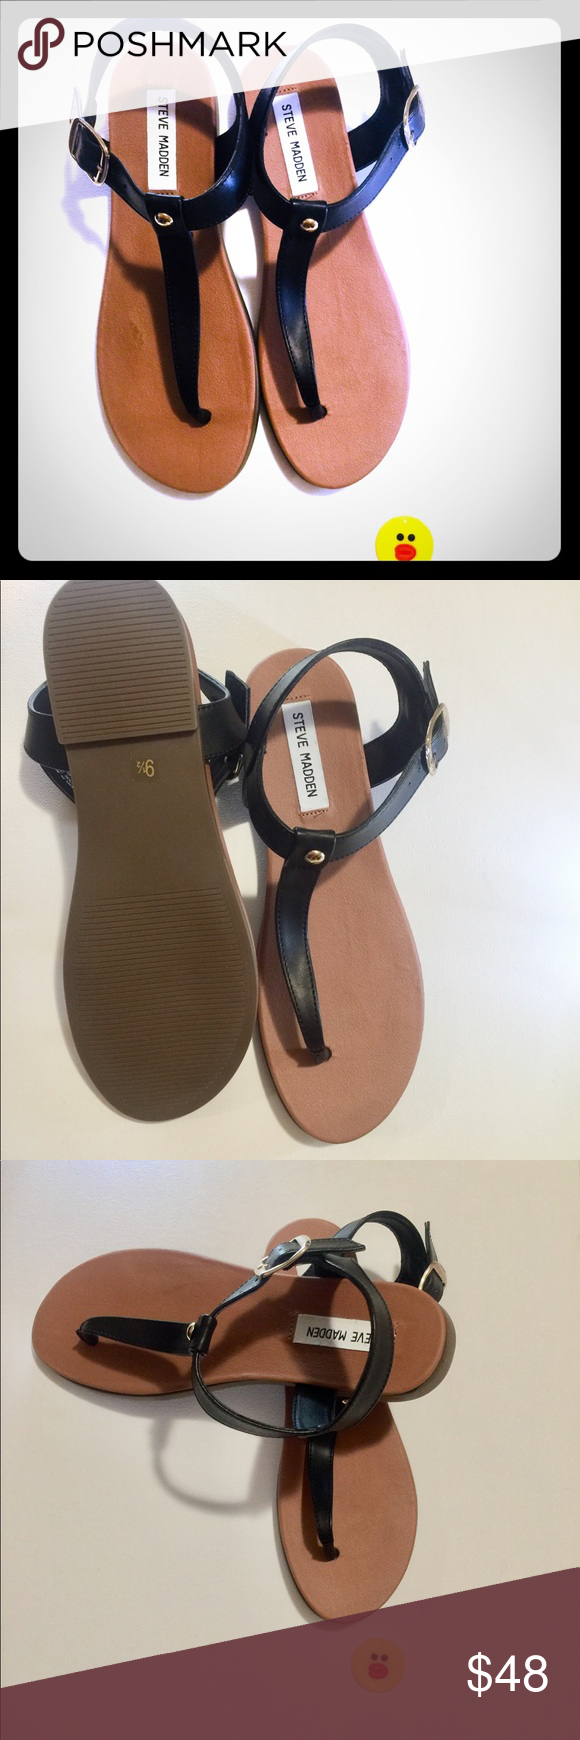 9fe1def8e8a Steve Madden Chaya Leather Black Sandals Brand new in box. These are ...